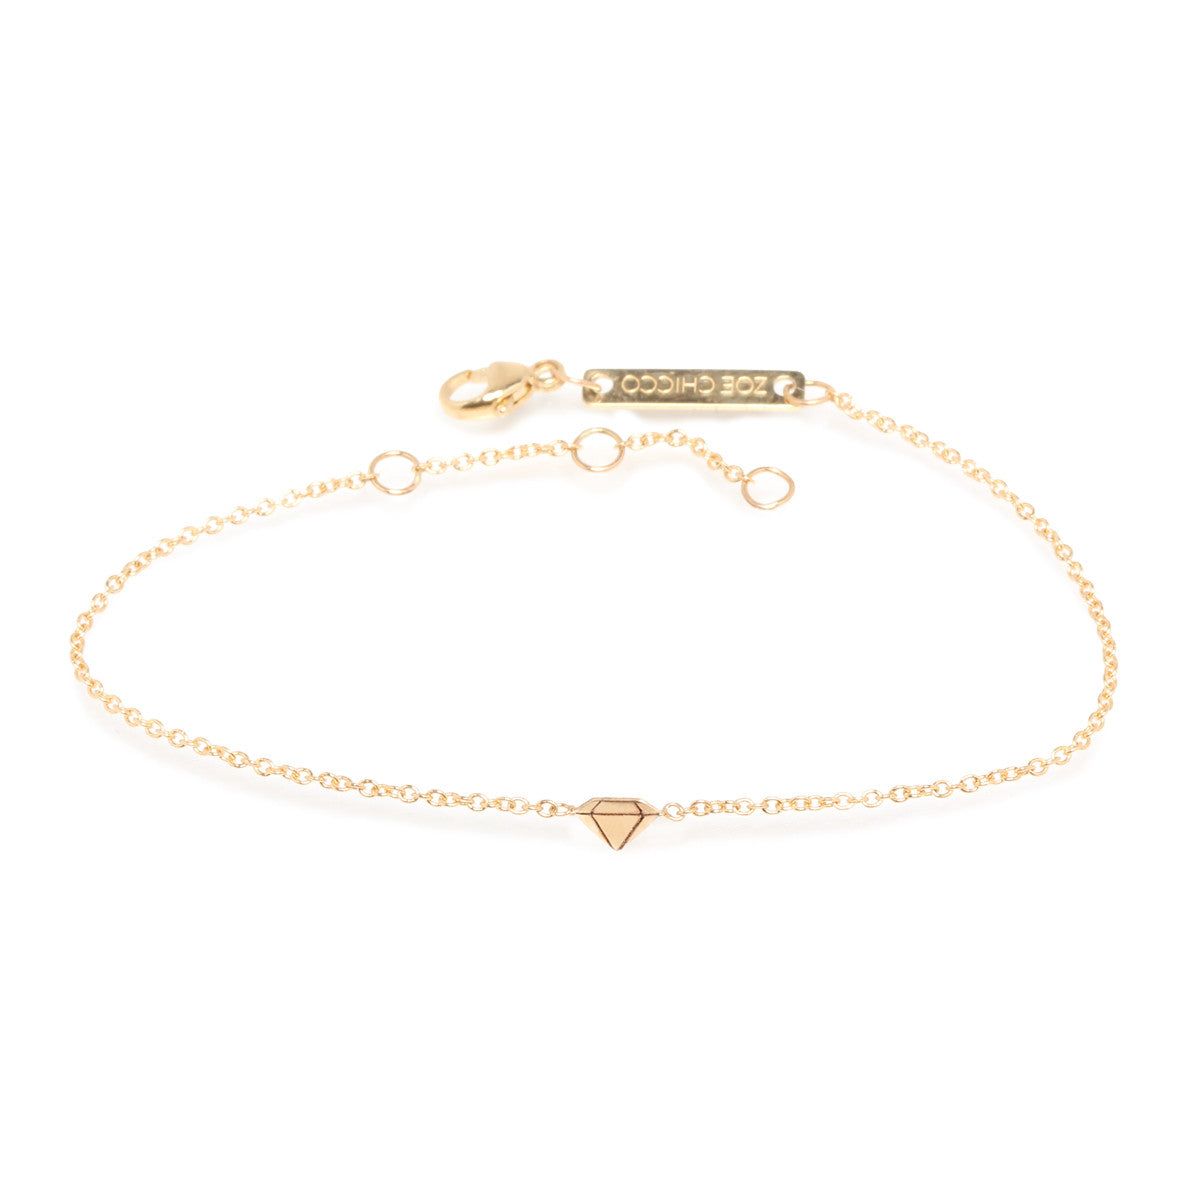 Zoë Chicco 14kt Yellow Gold Itty Bitty Faceted Diamond Bracelet